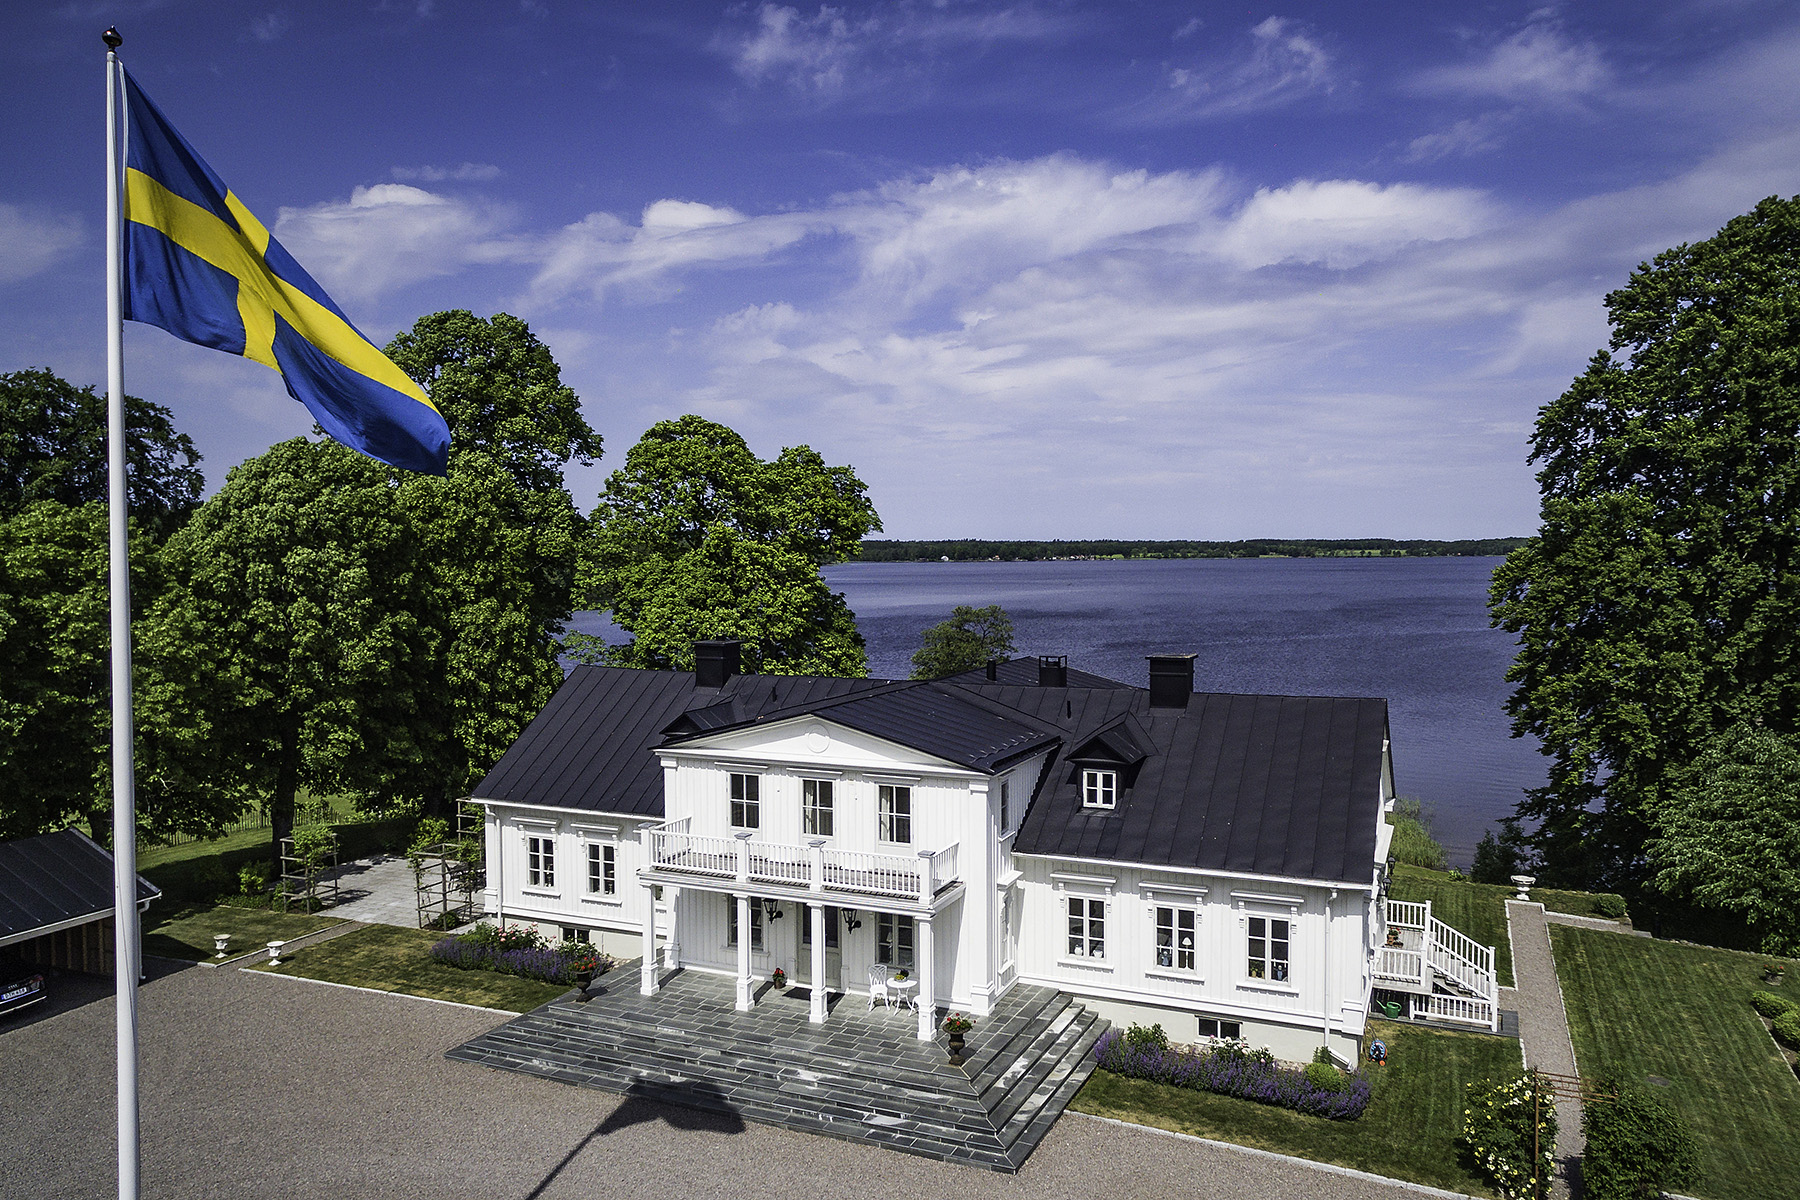 Single Family Home for Sale at Ollestad Manor Ollestad 6 Other Vastra Gotaland, Vastra Gotaland, 524 95 Sweden